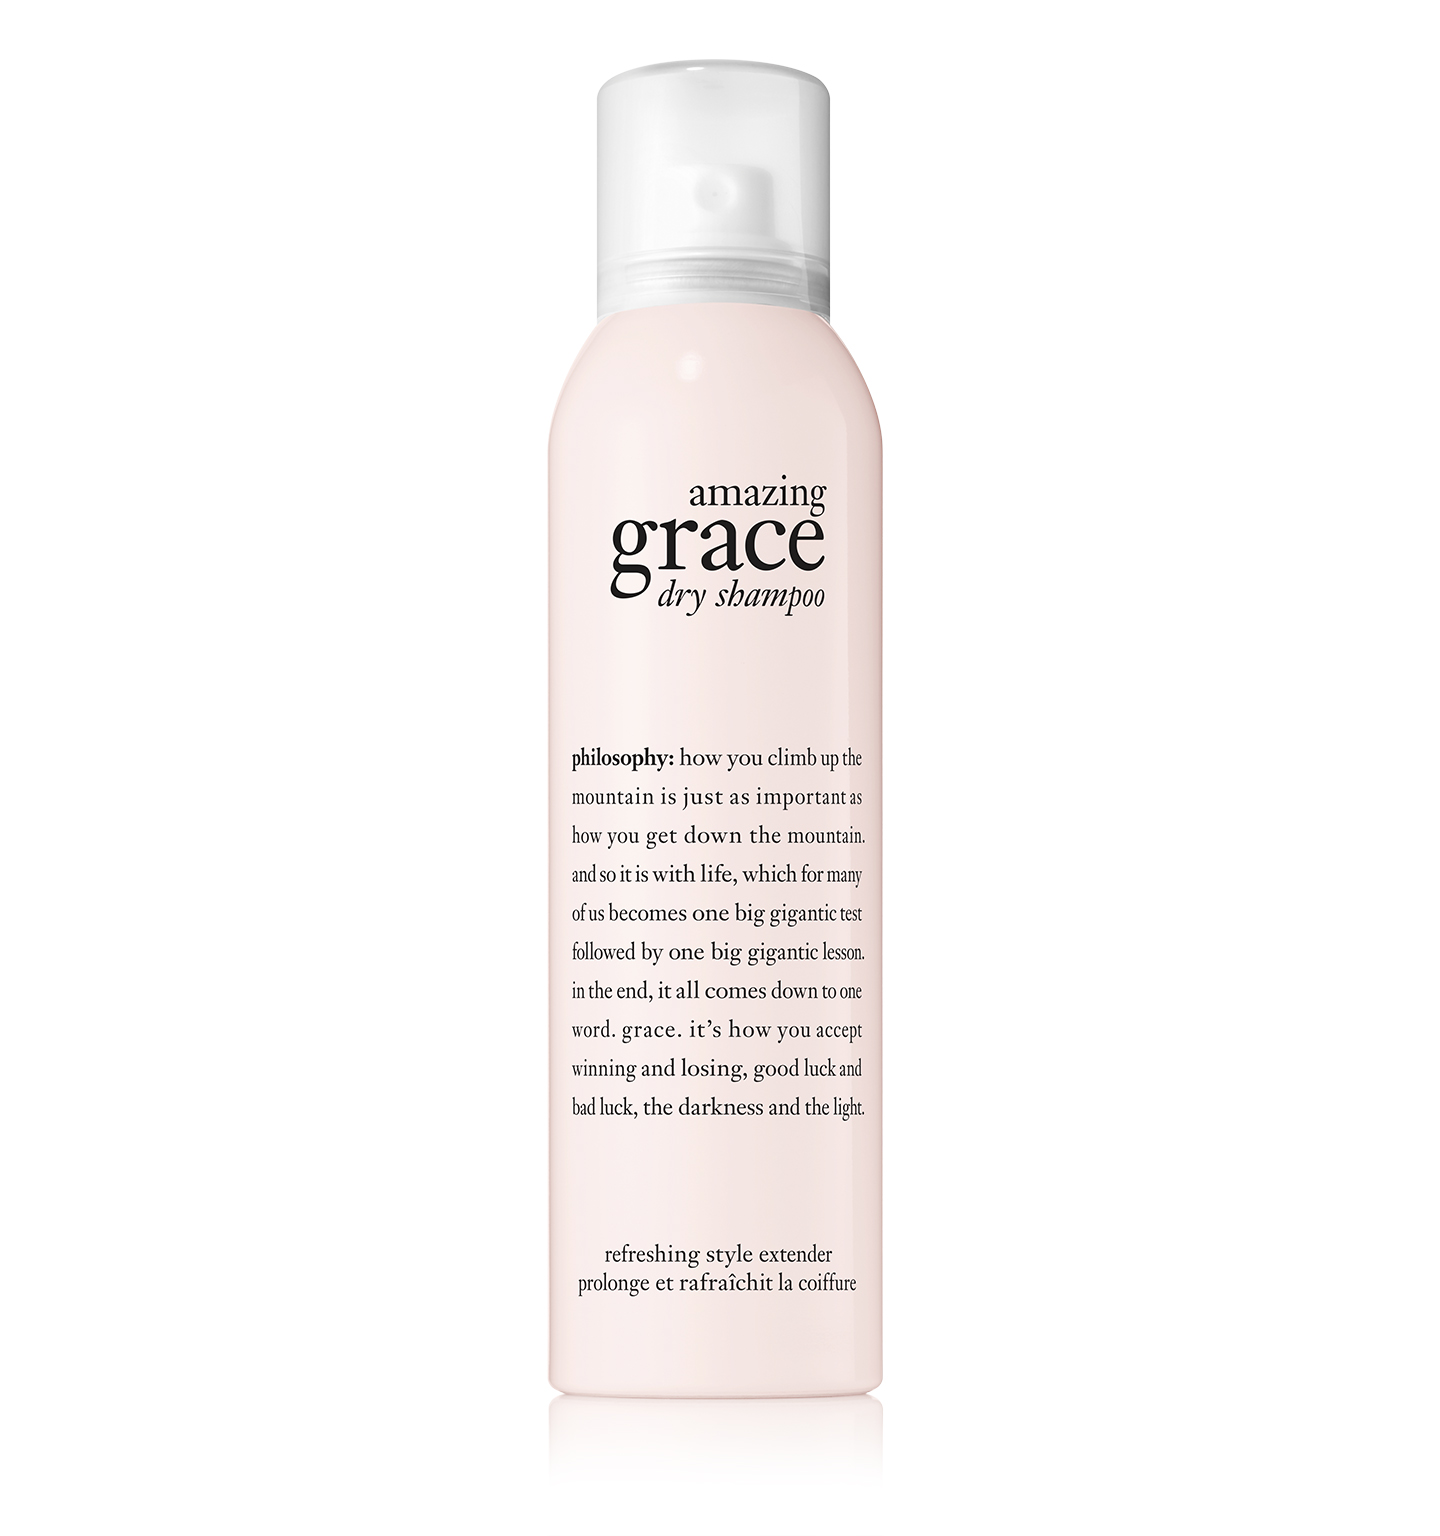 philosophy, amazing grace 4.3 oz dry shampoo